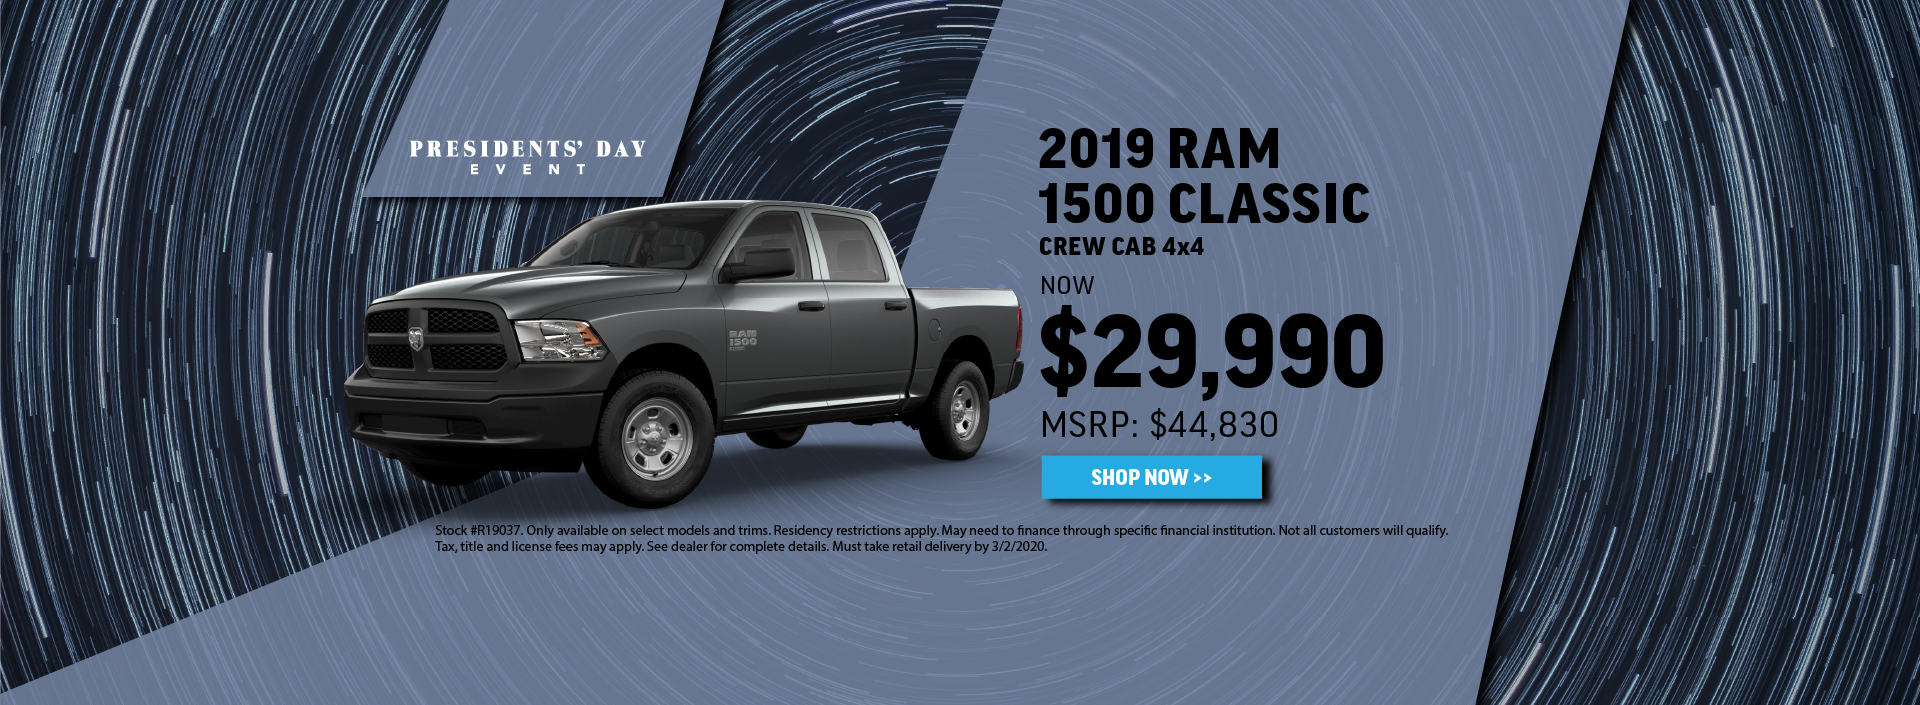 2019 Ram 1500 Classic Offer